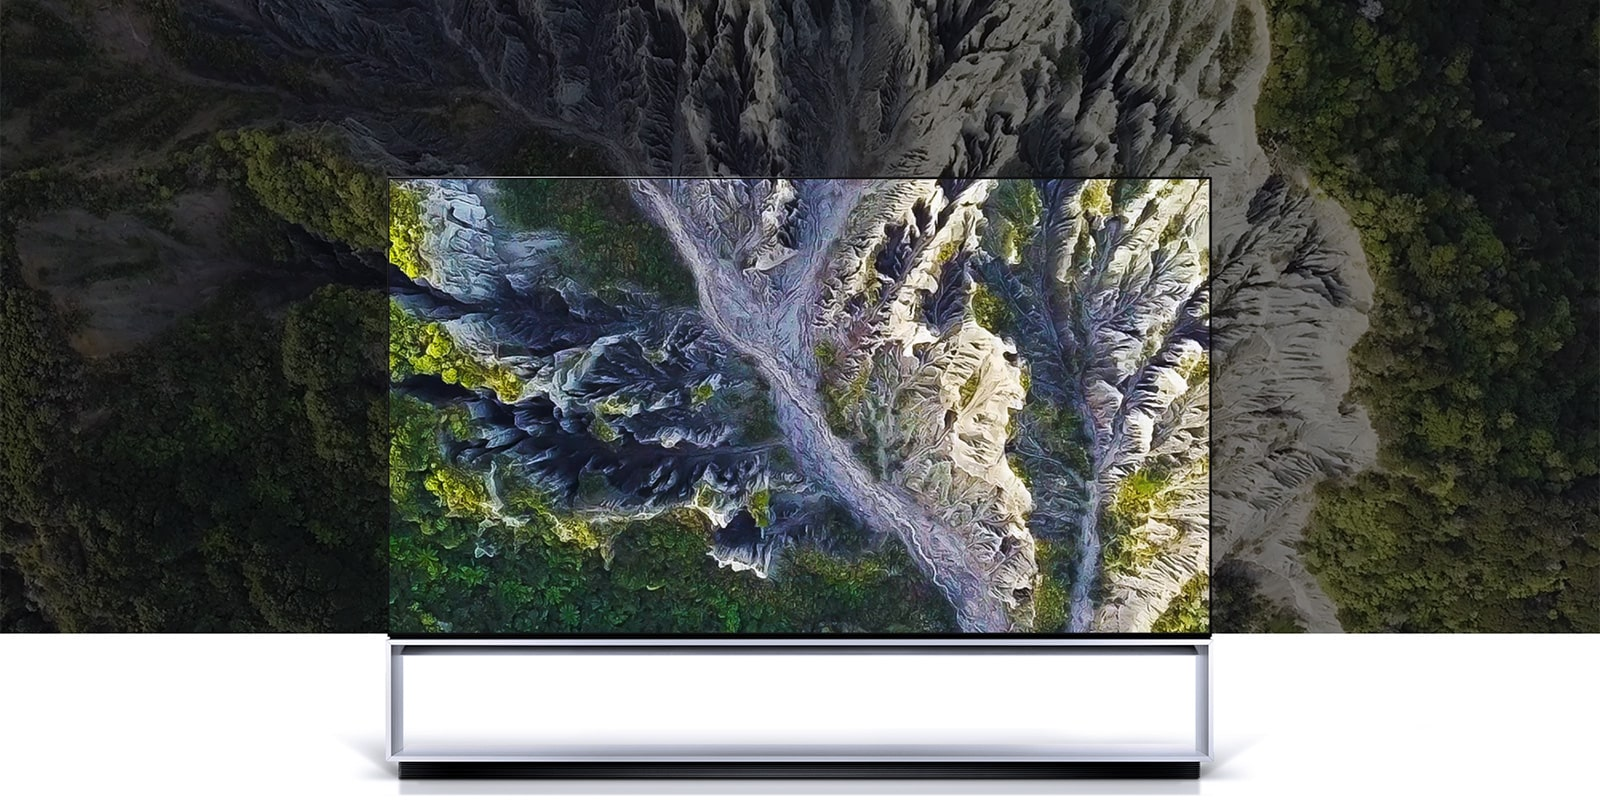 Image of LG SIGNATURE OLED TV Z9 with the screen filled with a gorge